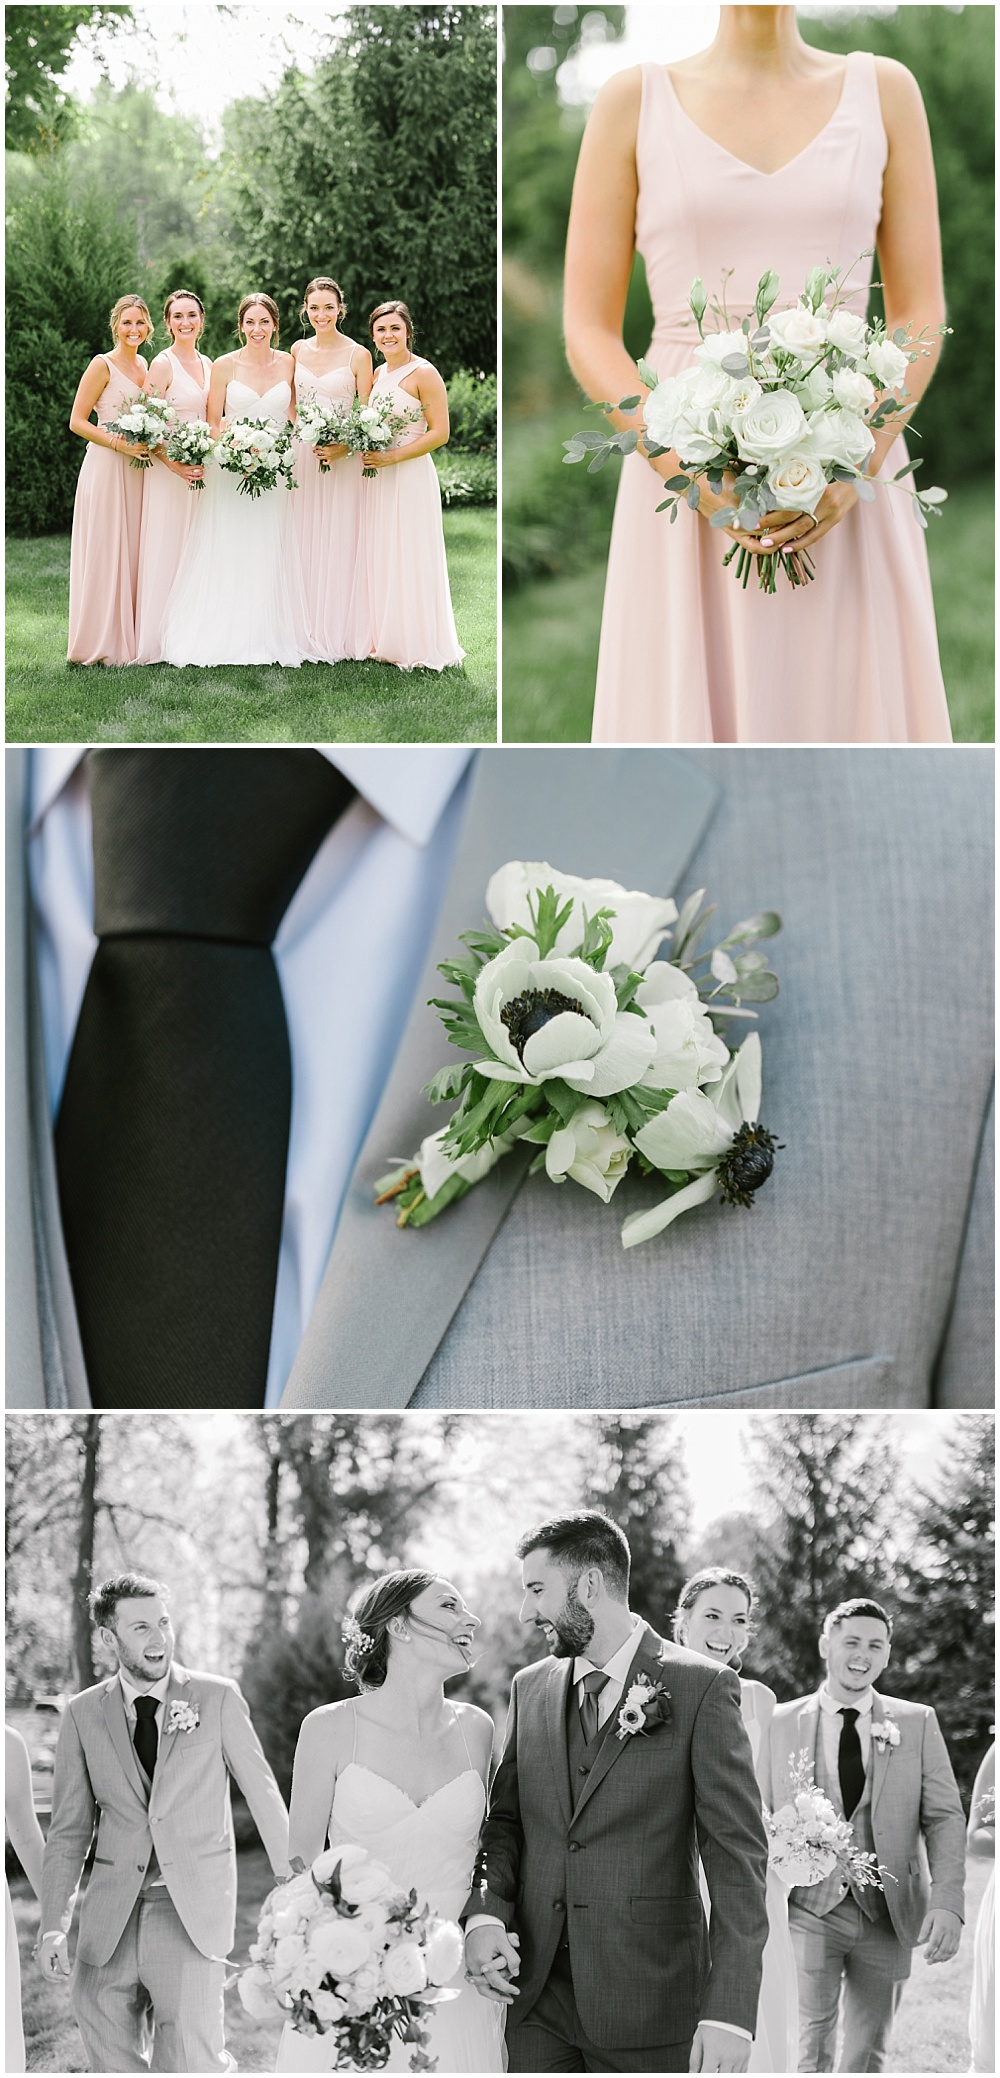 Blush bridesmaid dressed with white and green bouquets and anenome boutonnieres against gray groomsmen suits Fall garden-inspired wedding at the Ritz Charles Garden Pavilion in Carmel, Indiana | Jessica Dum Wedding Coordination